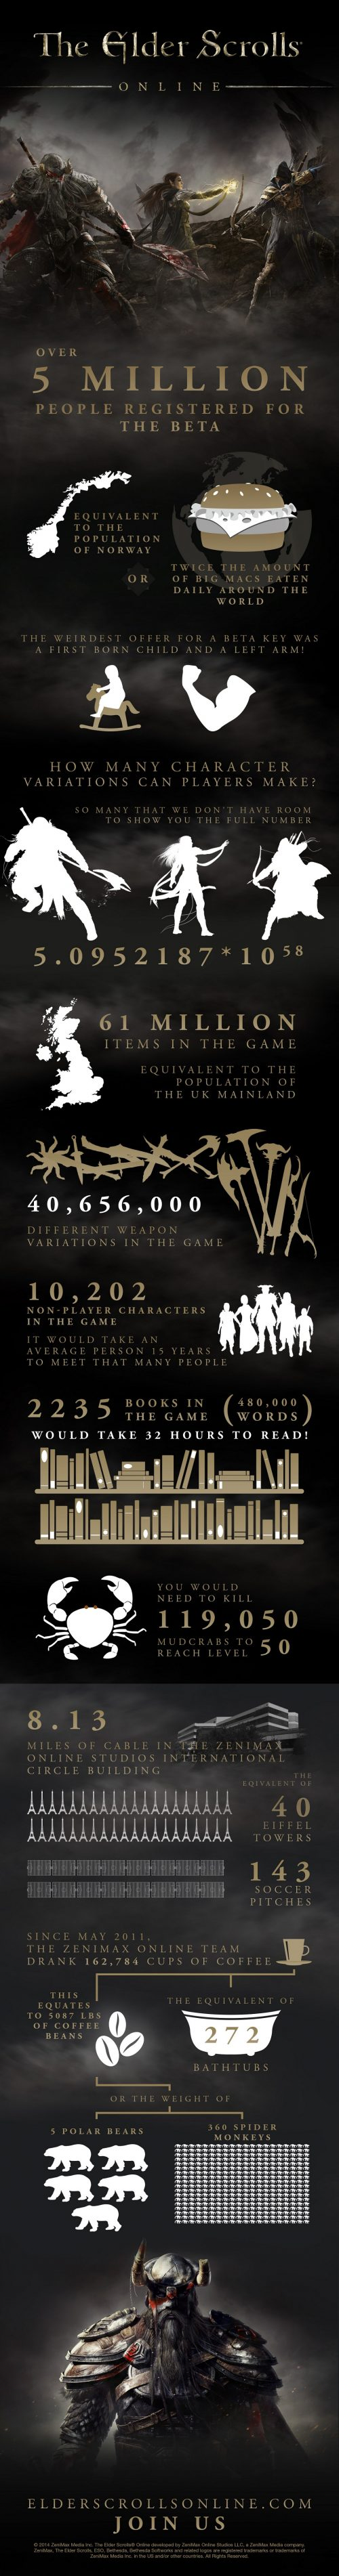 The Elder Scrolls Online launch celebrated with infographic